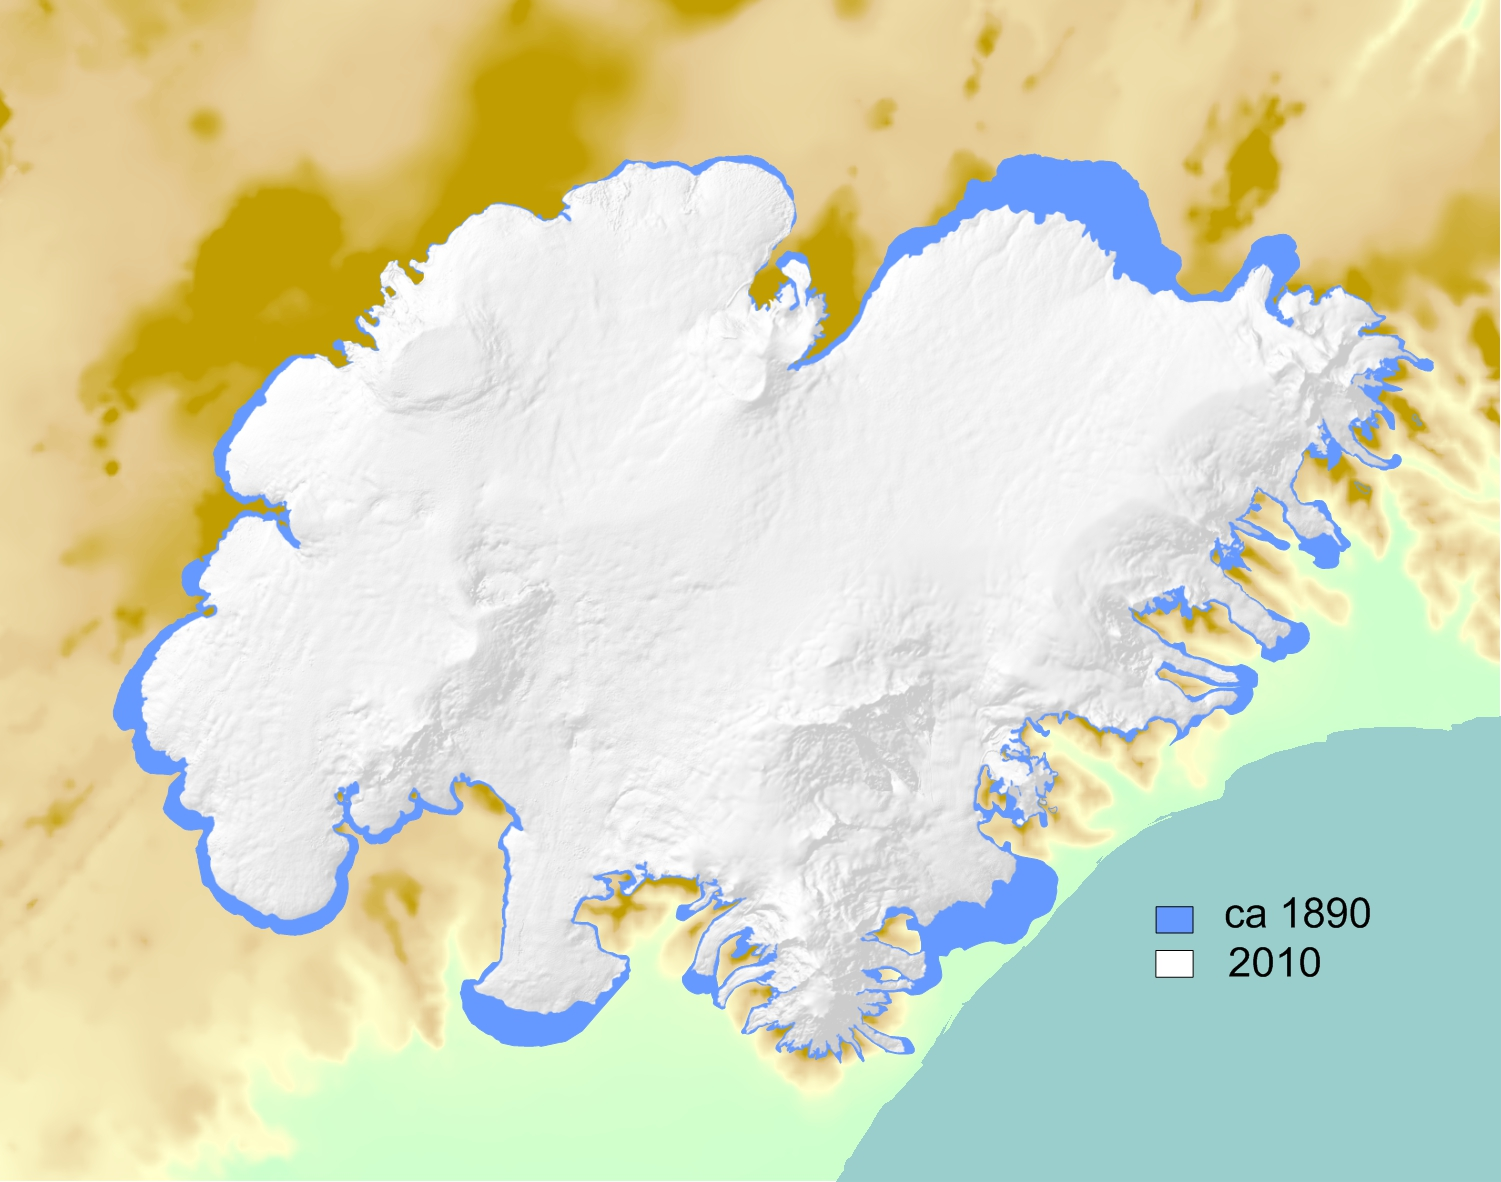 Outline of Vatnajökull ca 1890 and 2010. Source: Icelandic Meteorological Office and Institute of Earth Sciences.